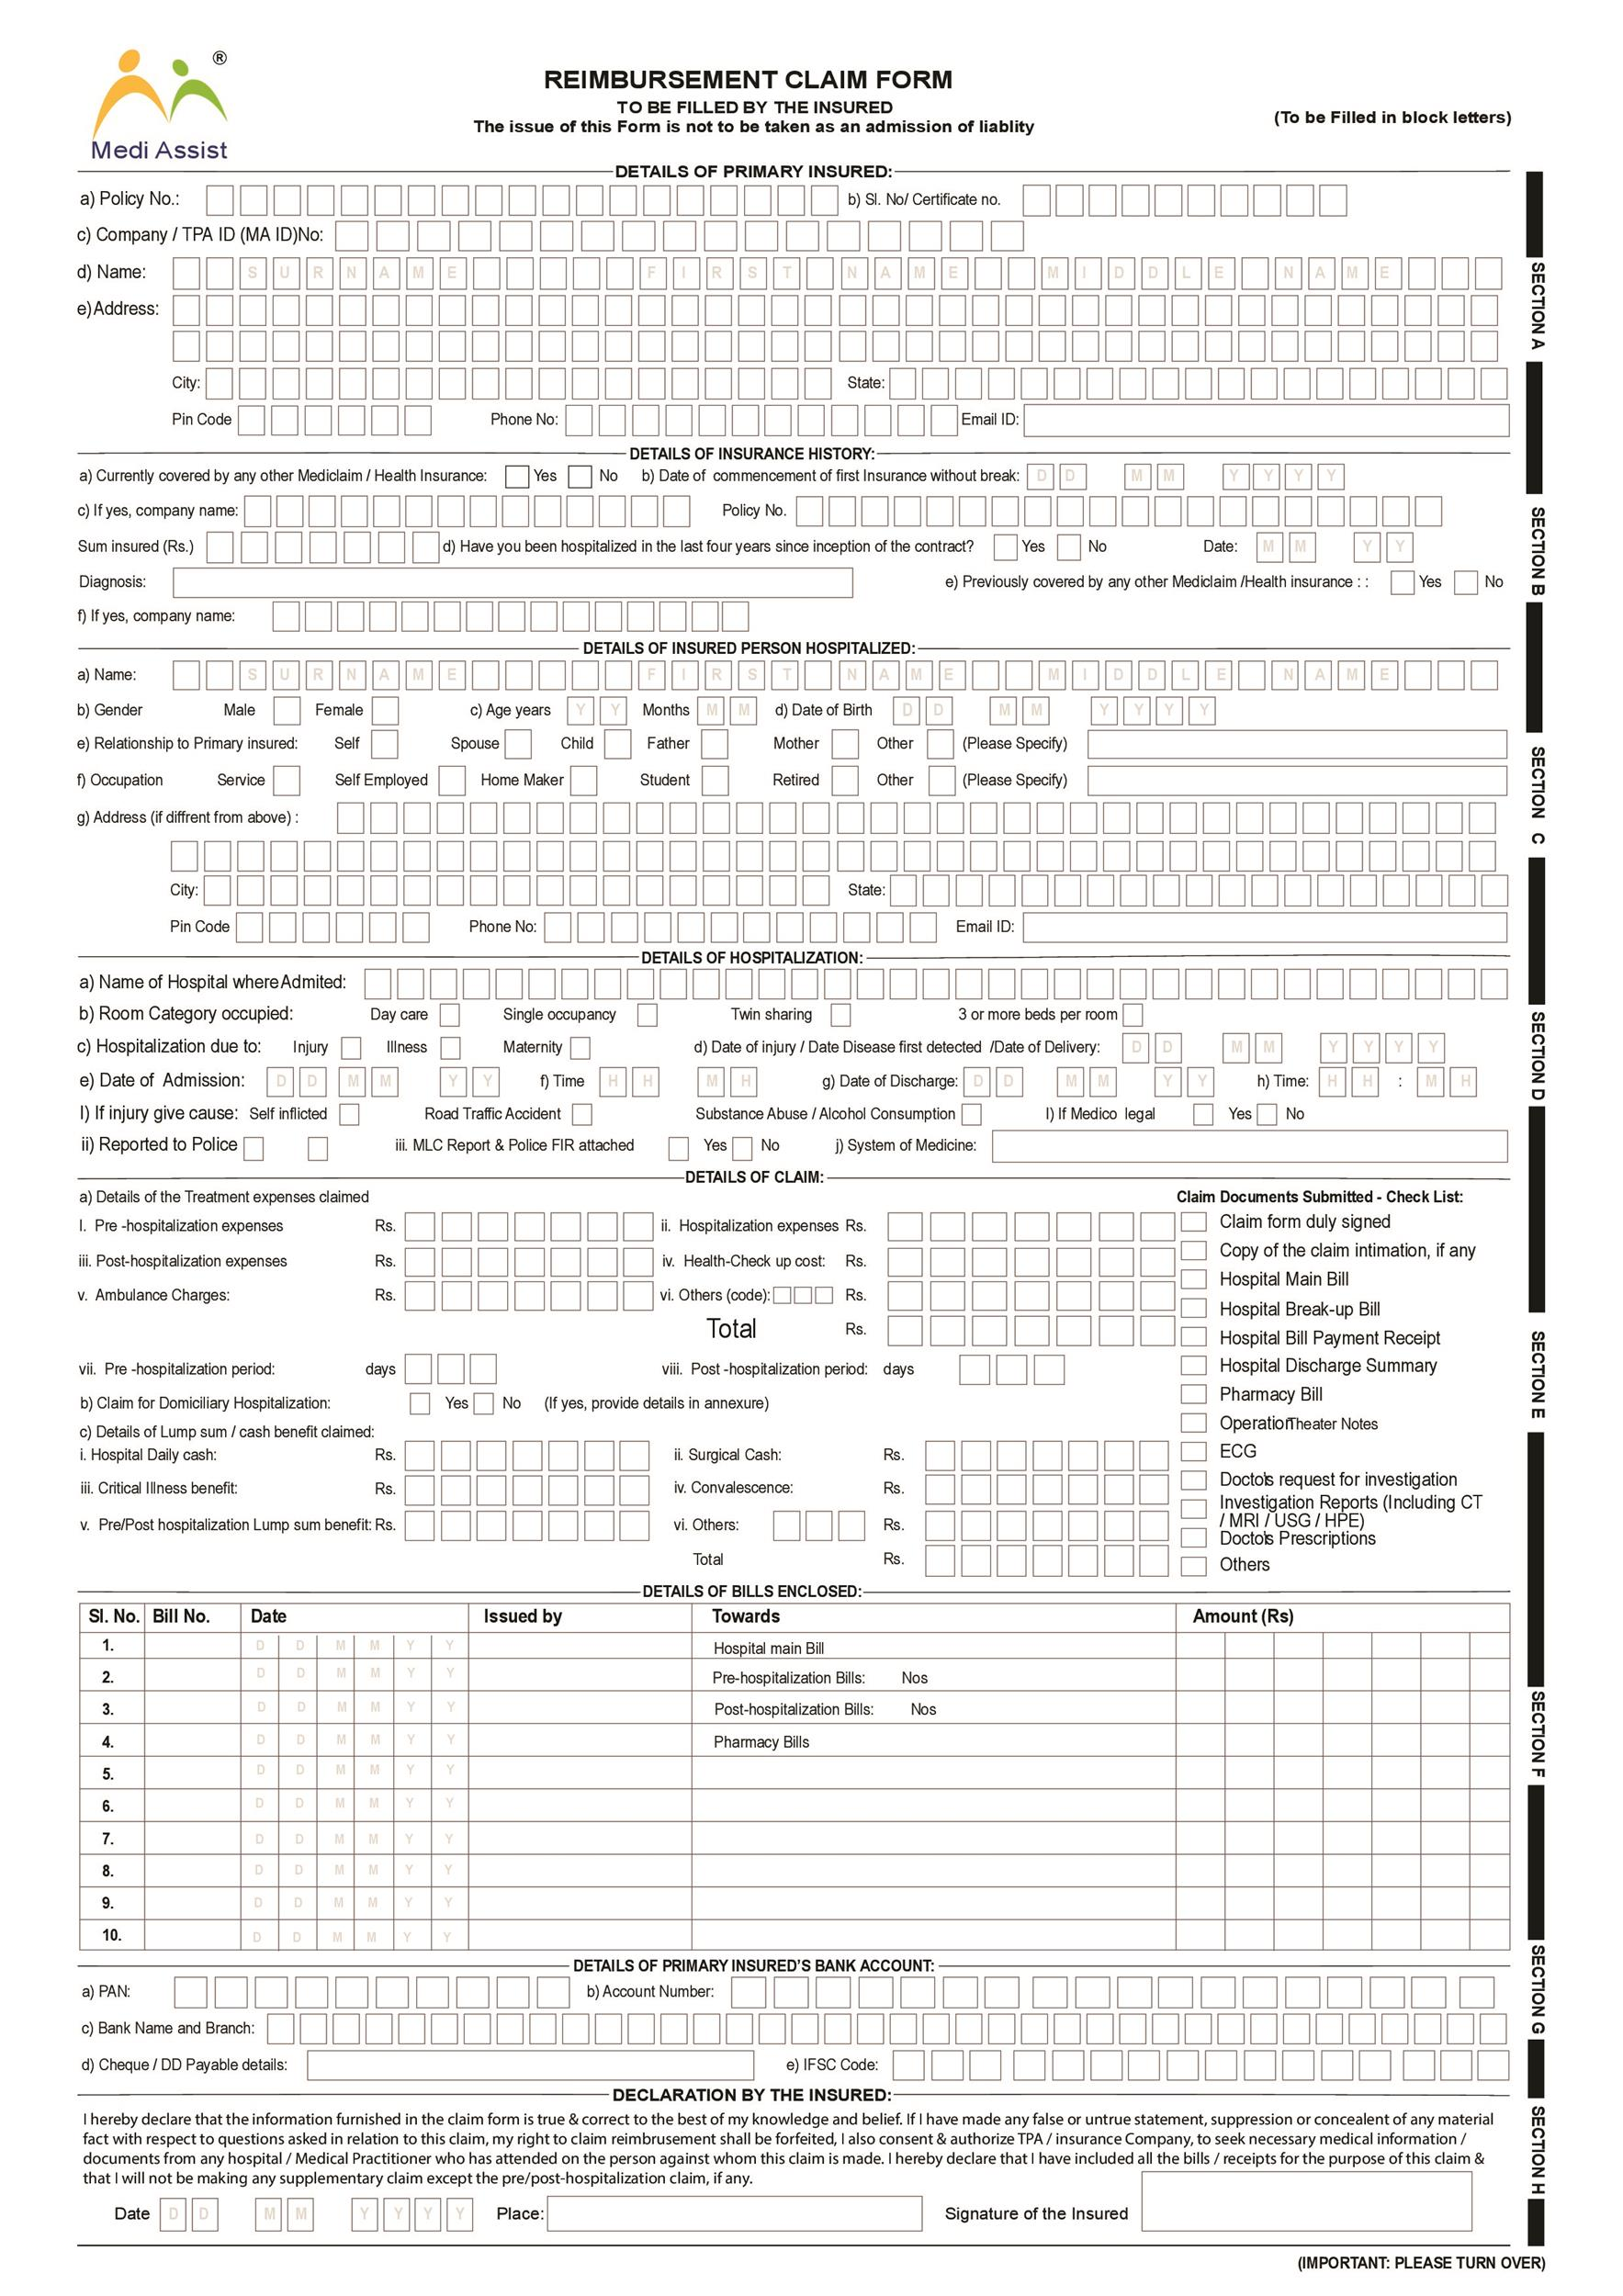 Free reimbursement form 21